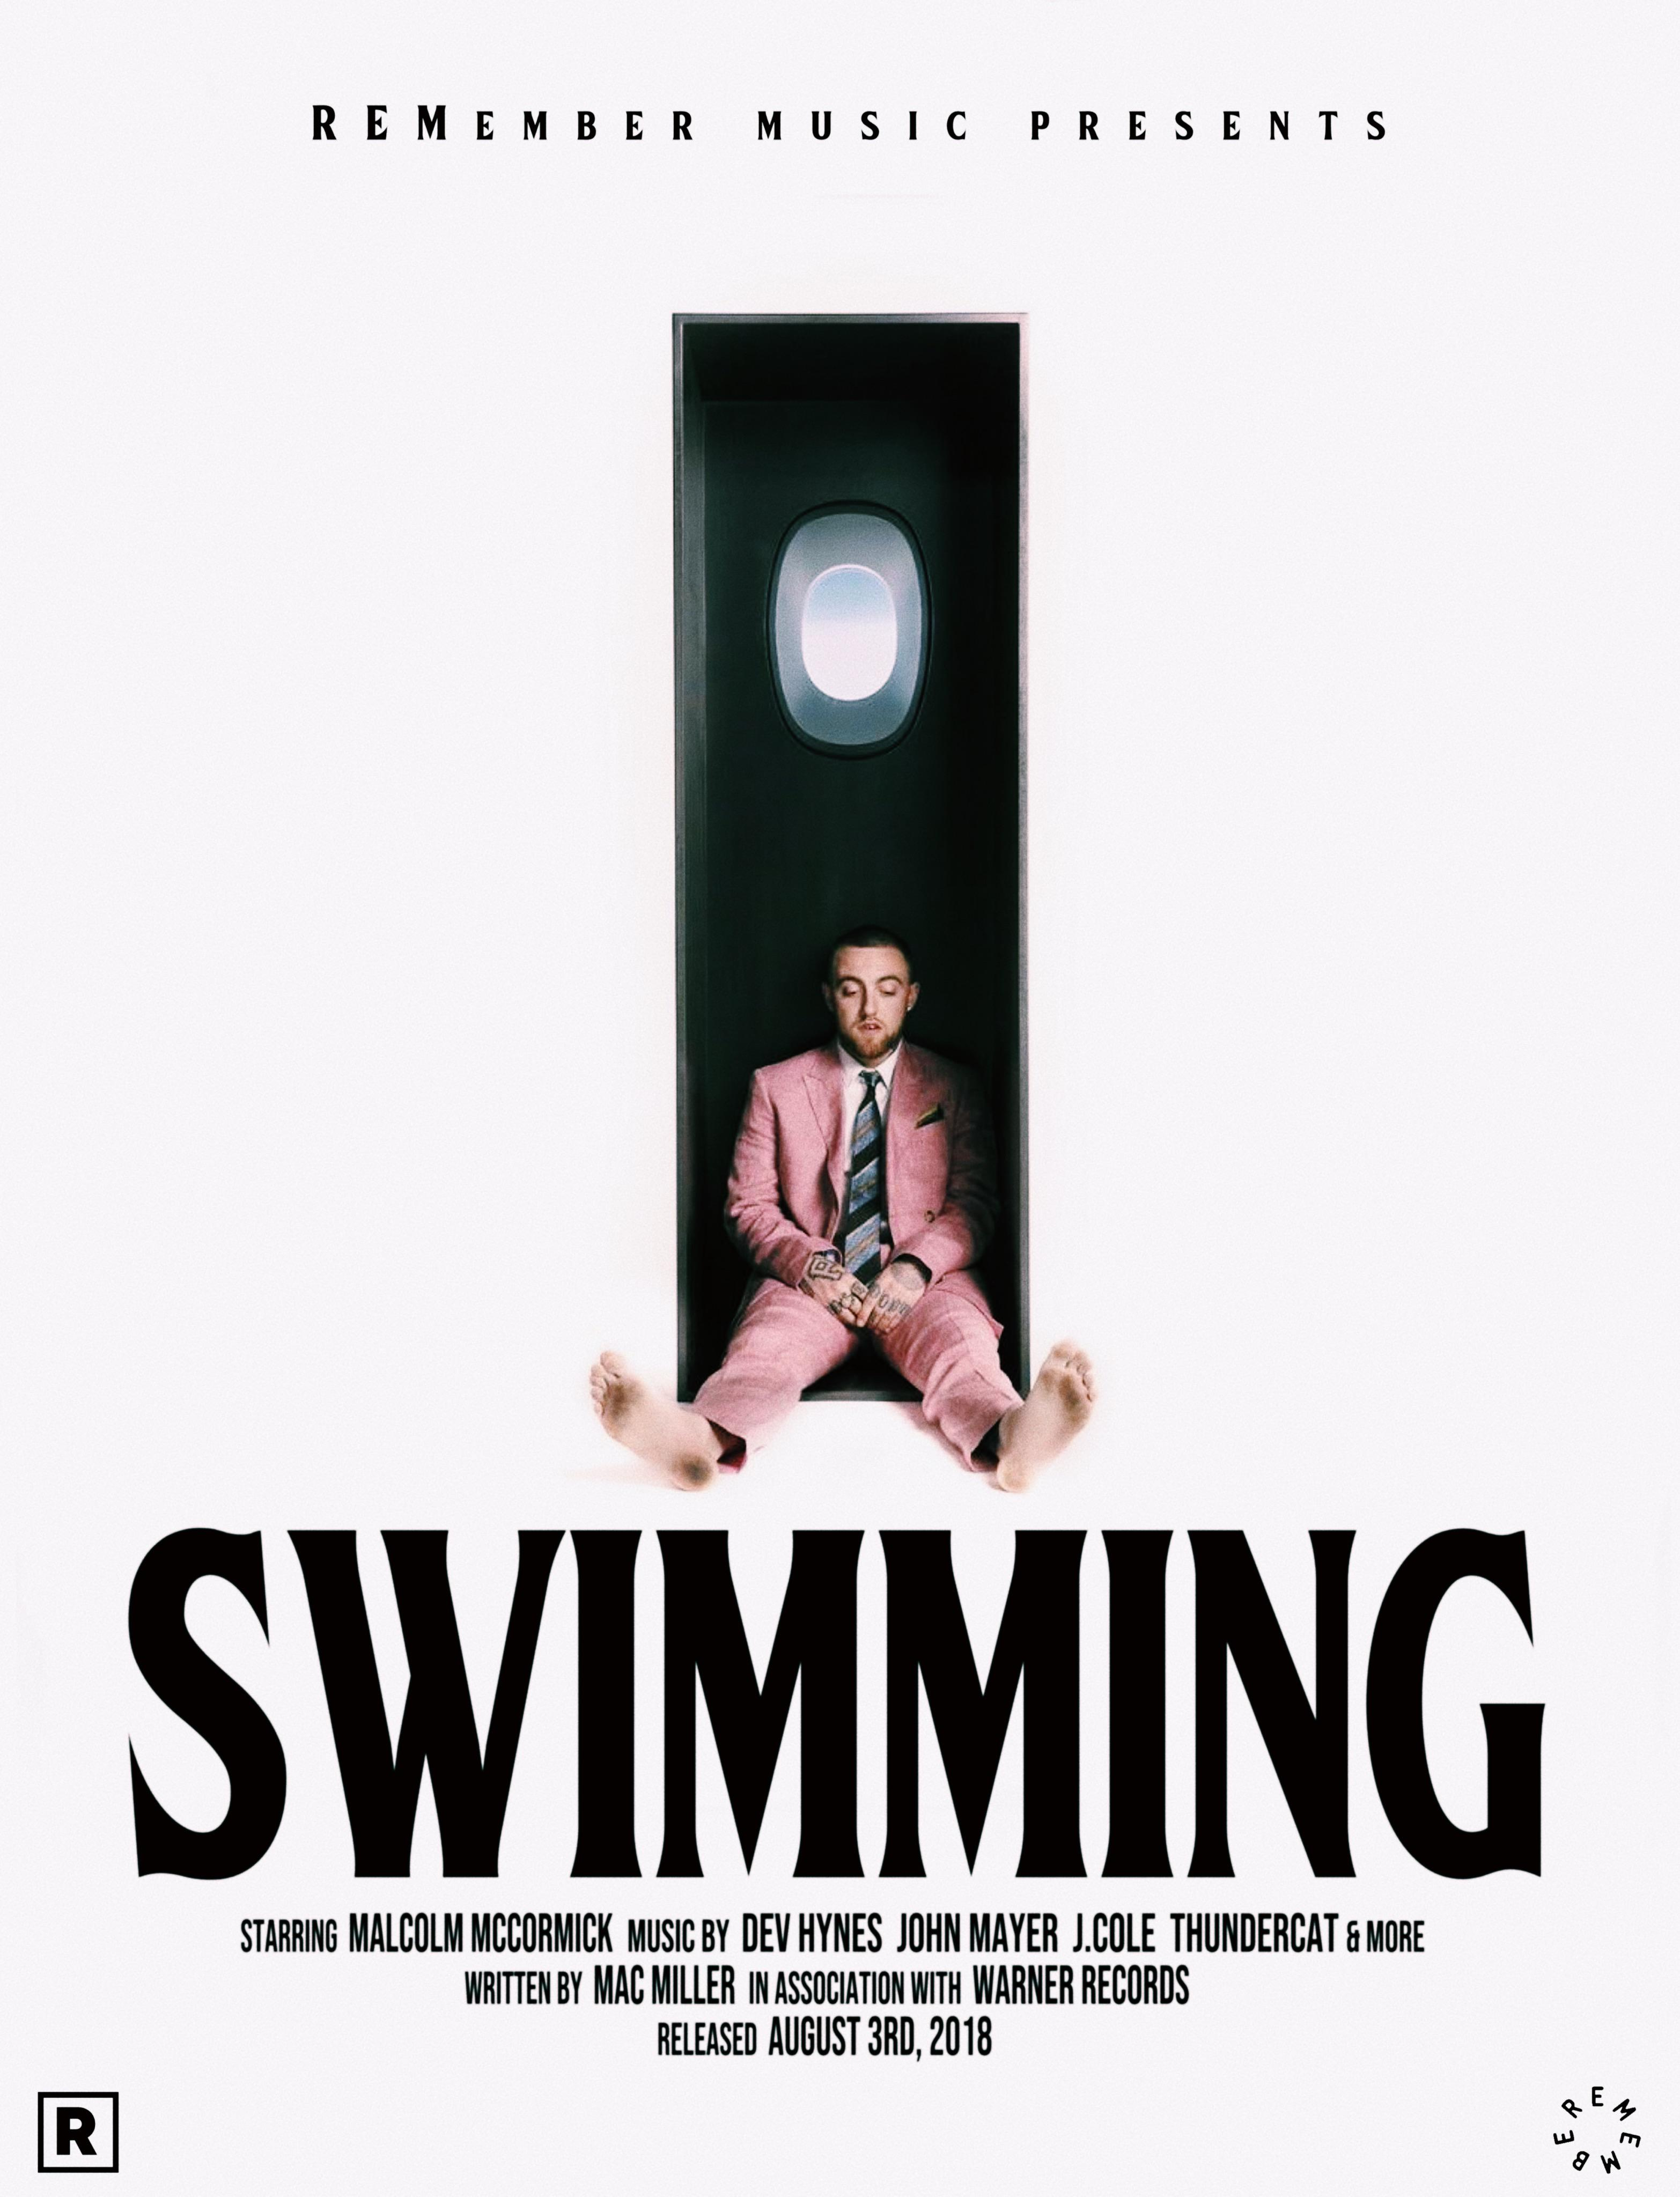 swimming movie poster macmiller